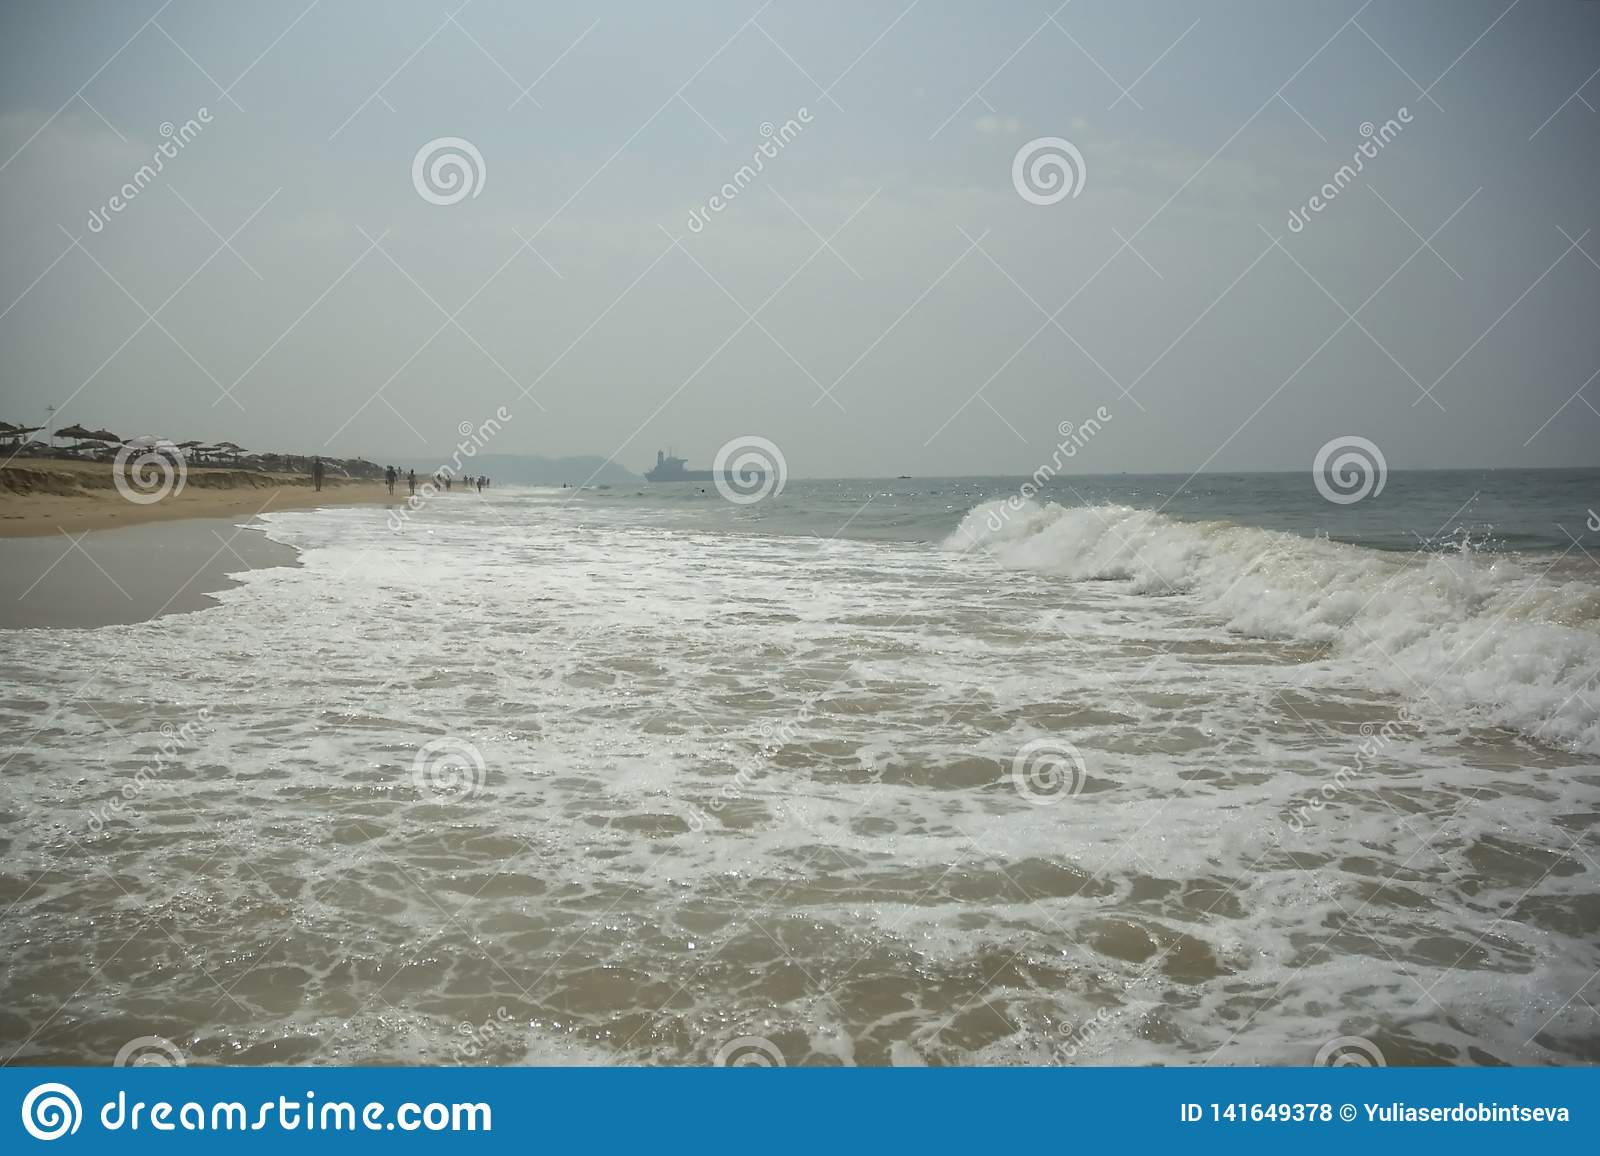 Beautiful view of a huge beach and waves and an old ship stranded